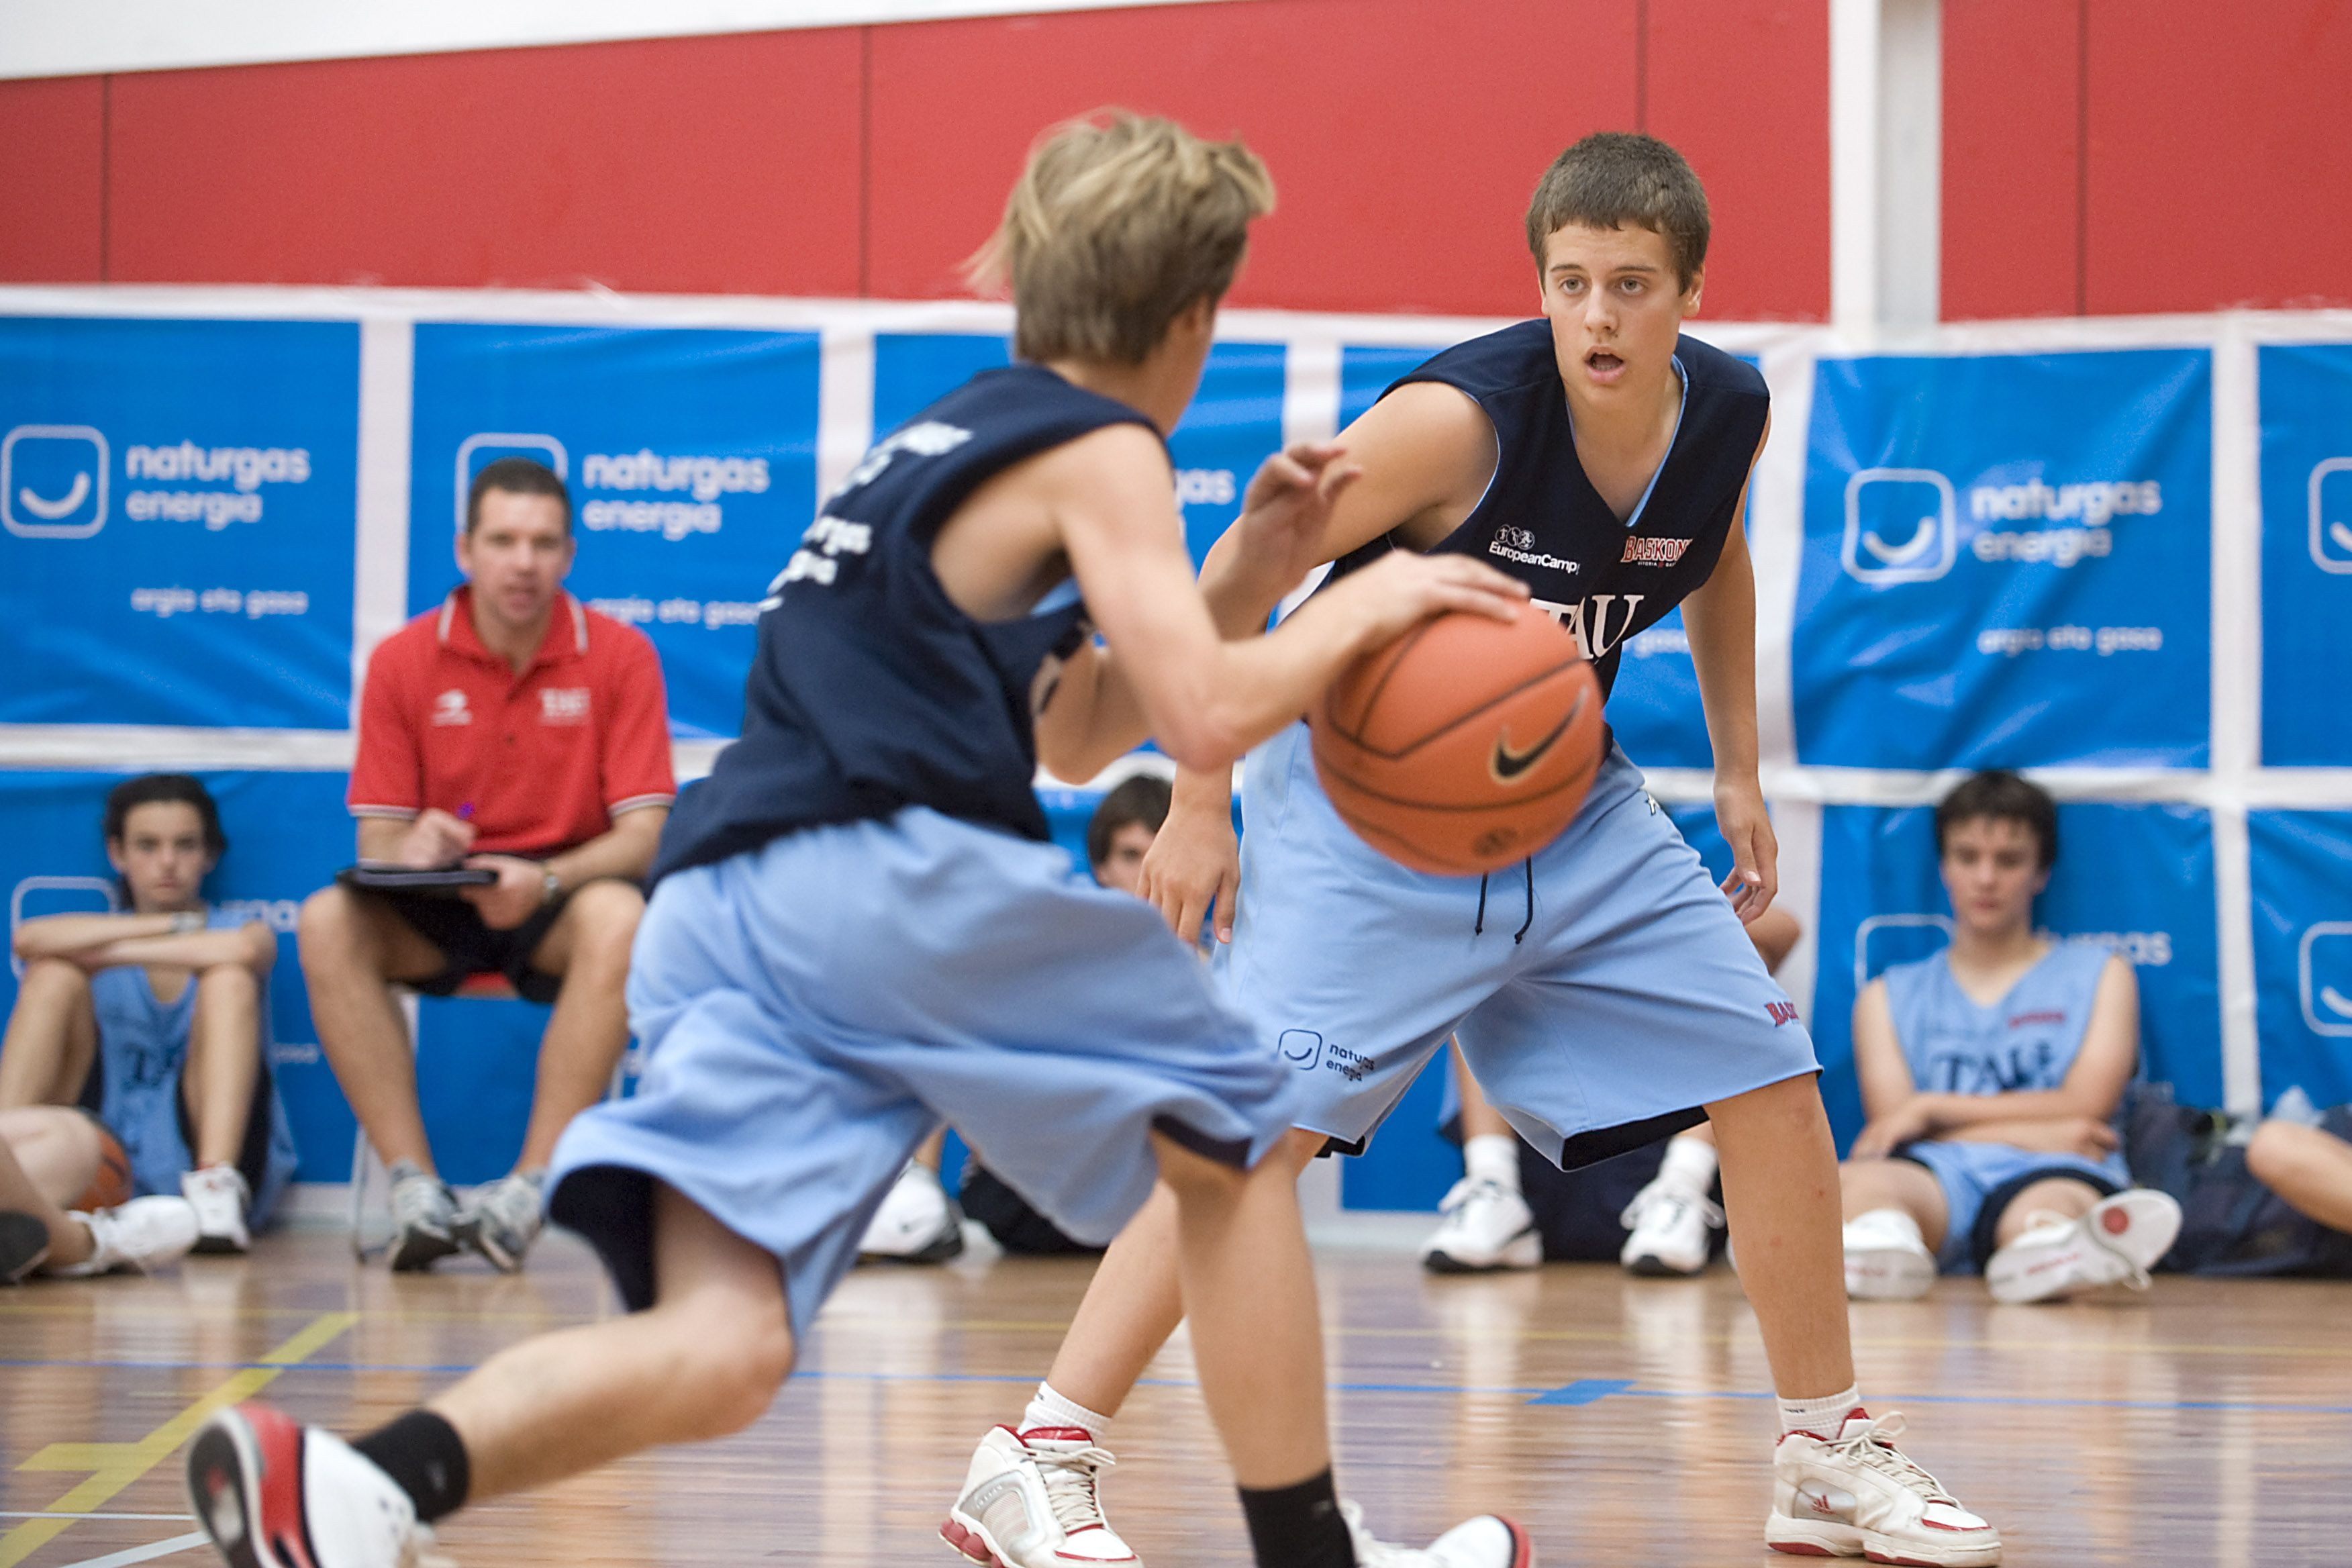 Summer Basketball Camps In Alicante Or Vitoria Also Includes Residential Accommodation A Wide Range Of Social Cultur Basketball Camp Camping Spain Basketball